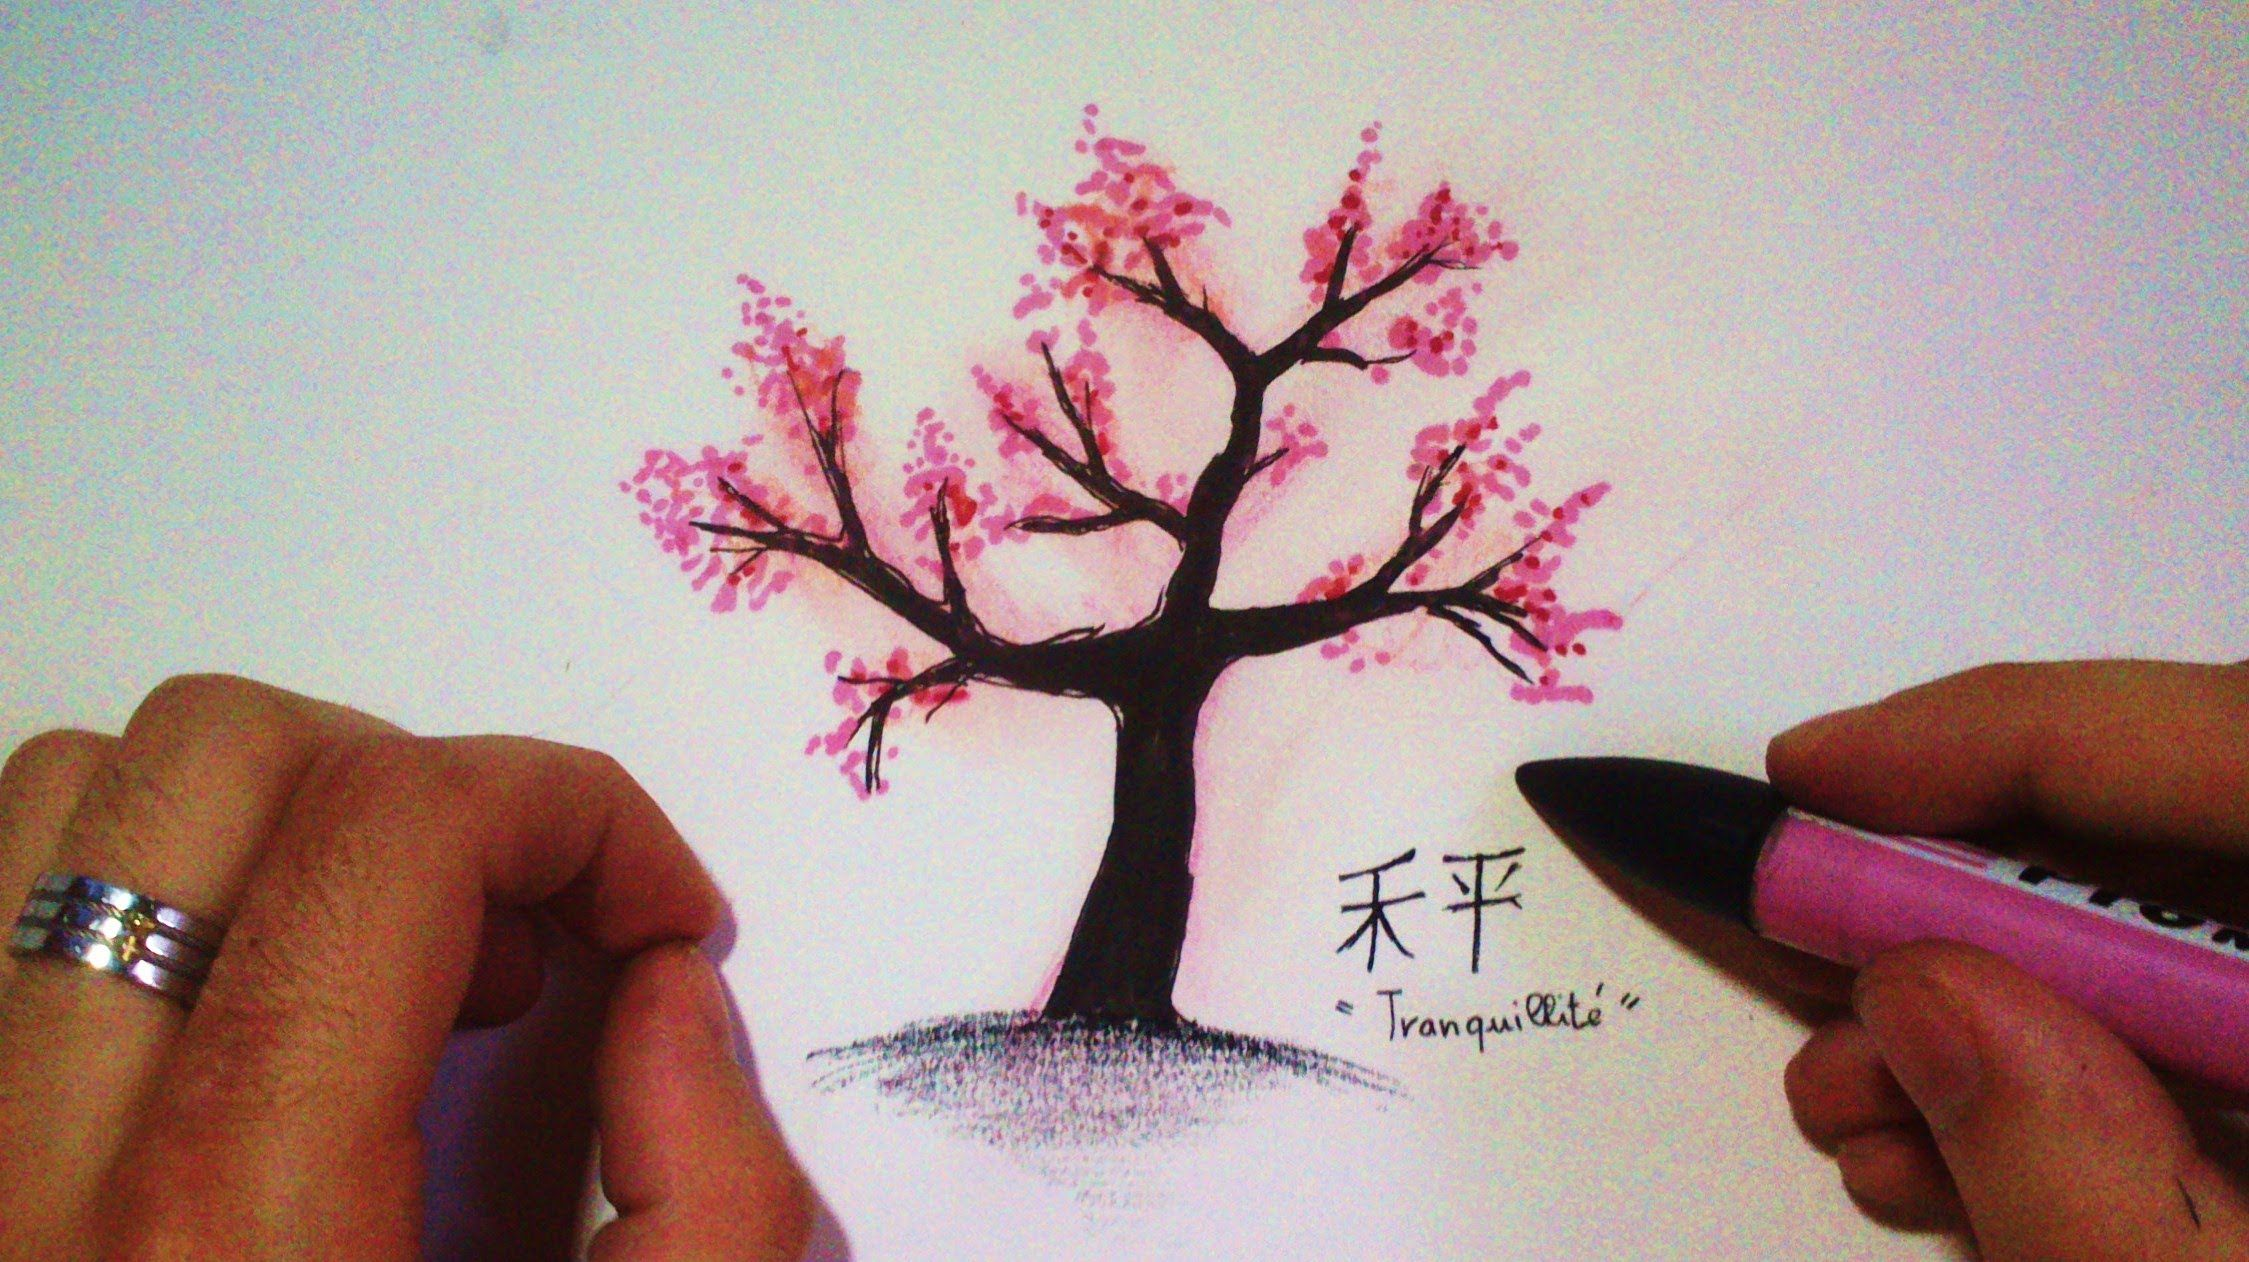 Atmospheric Music and Time Lapse by me.. 2 WAYS! easy.. Japanese Tree - Cherry tree - Cerisier Japonais. My channel drawing : http://bit.ly/tutodrawSUBSCRIBE...